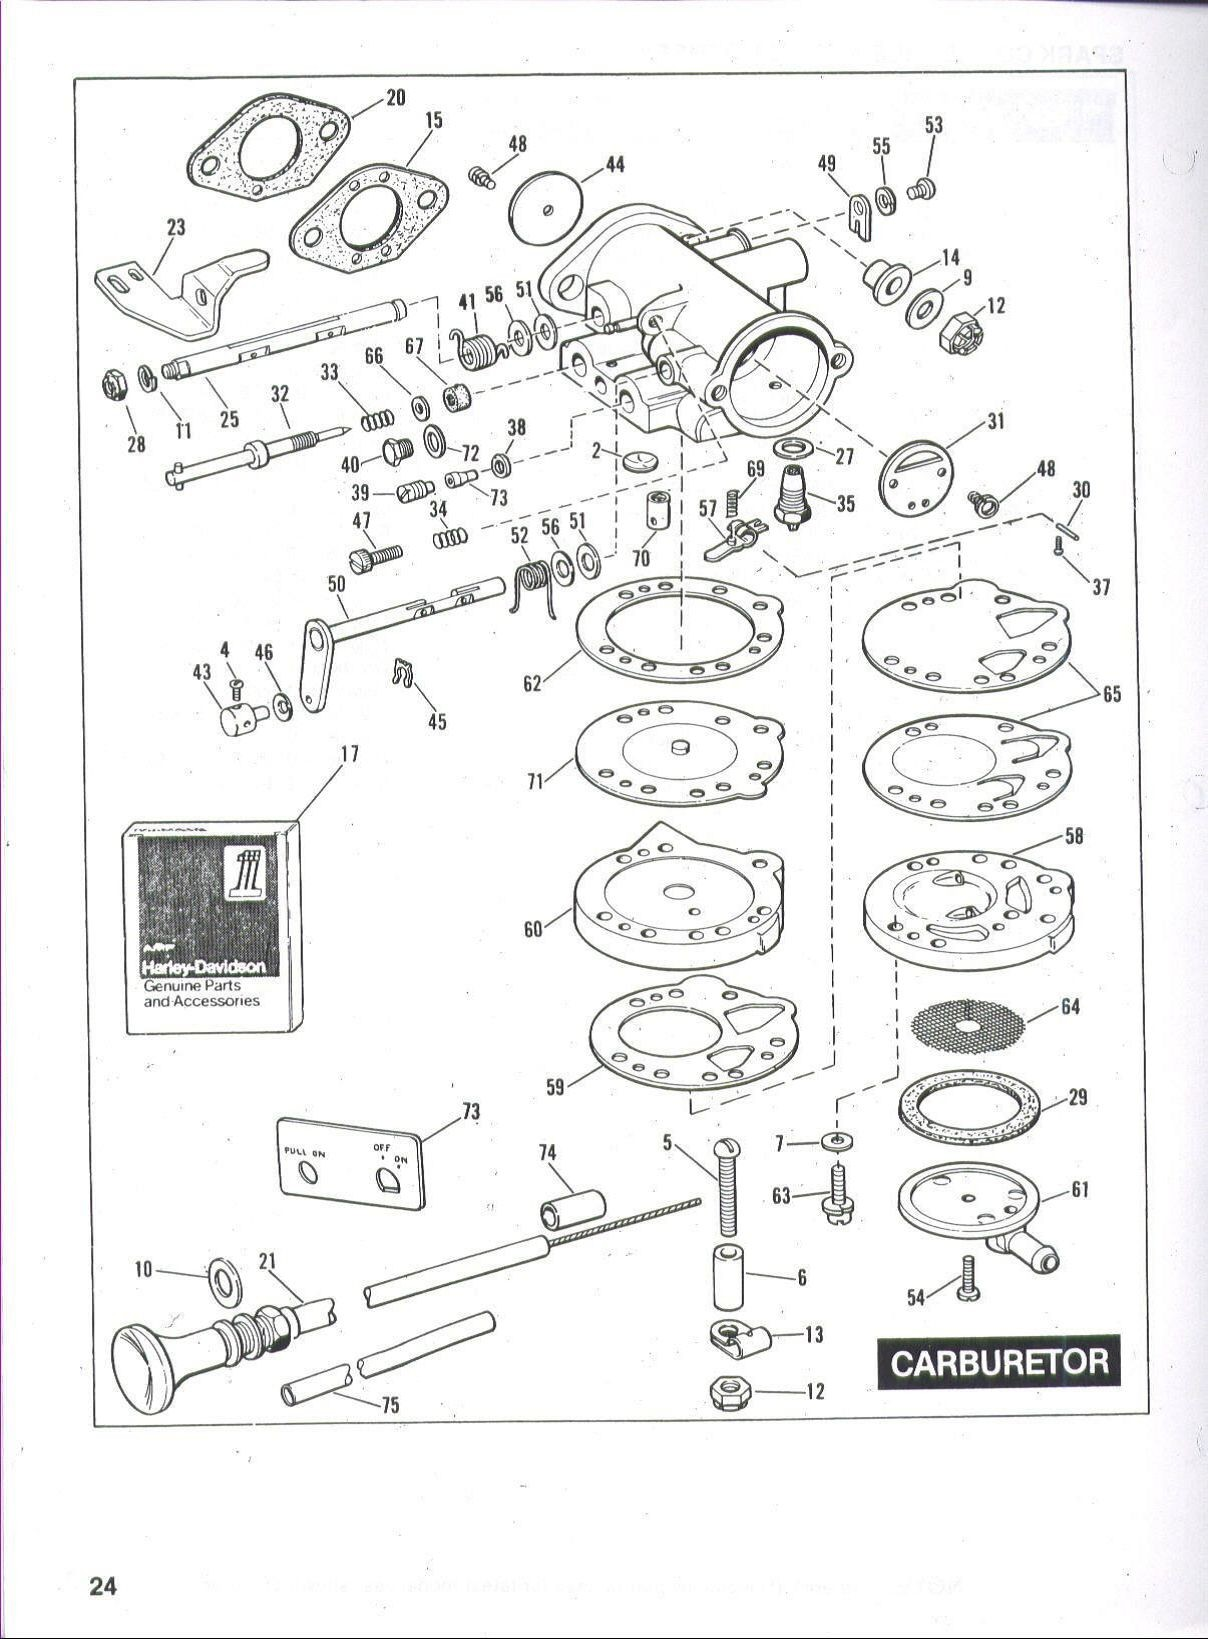 Harley Engine Diagram Harley Davidson Golf Cart Carburetor Diagram Utv Stuff Of Harley Engine Diagram